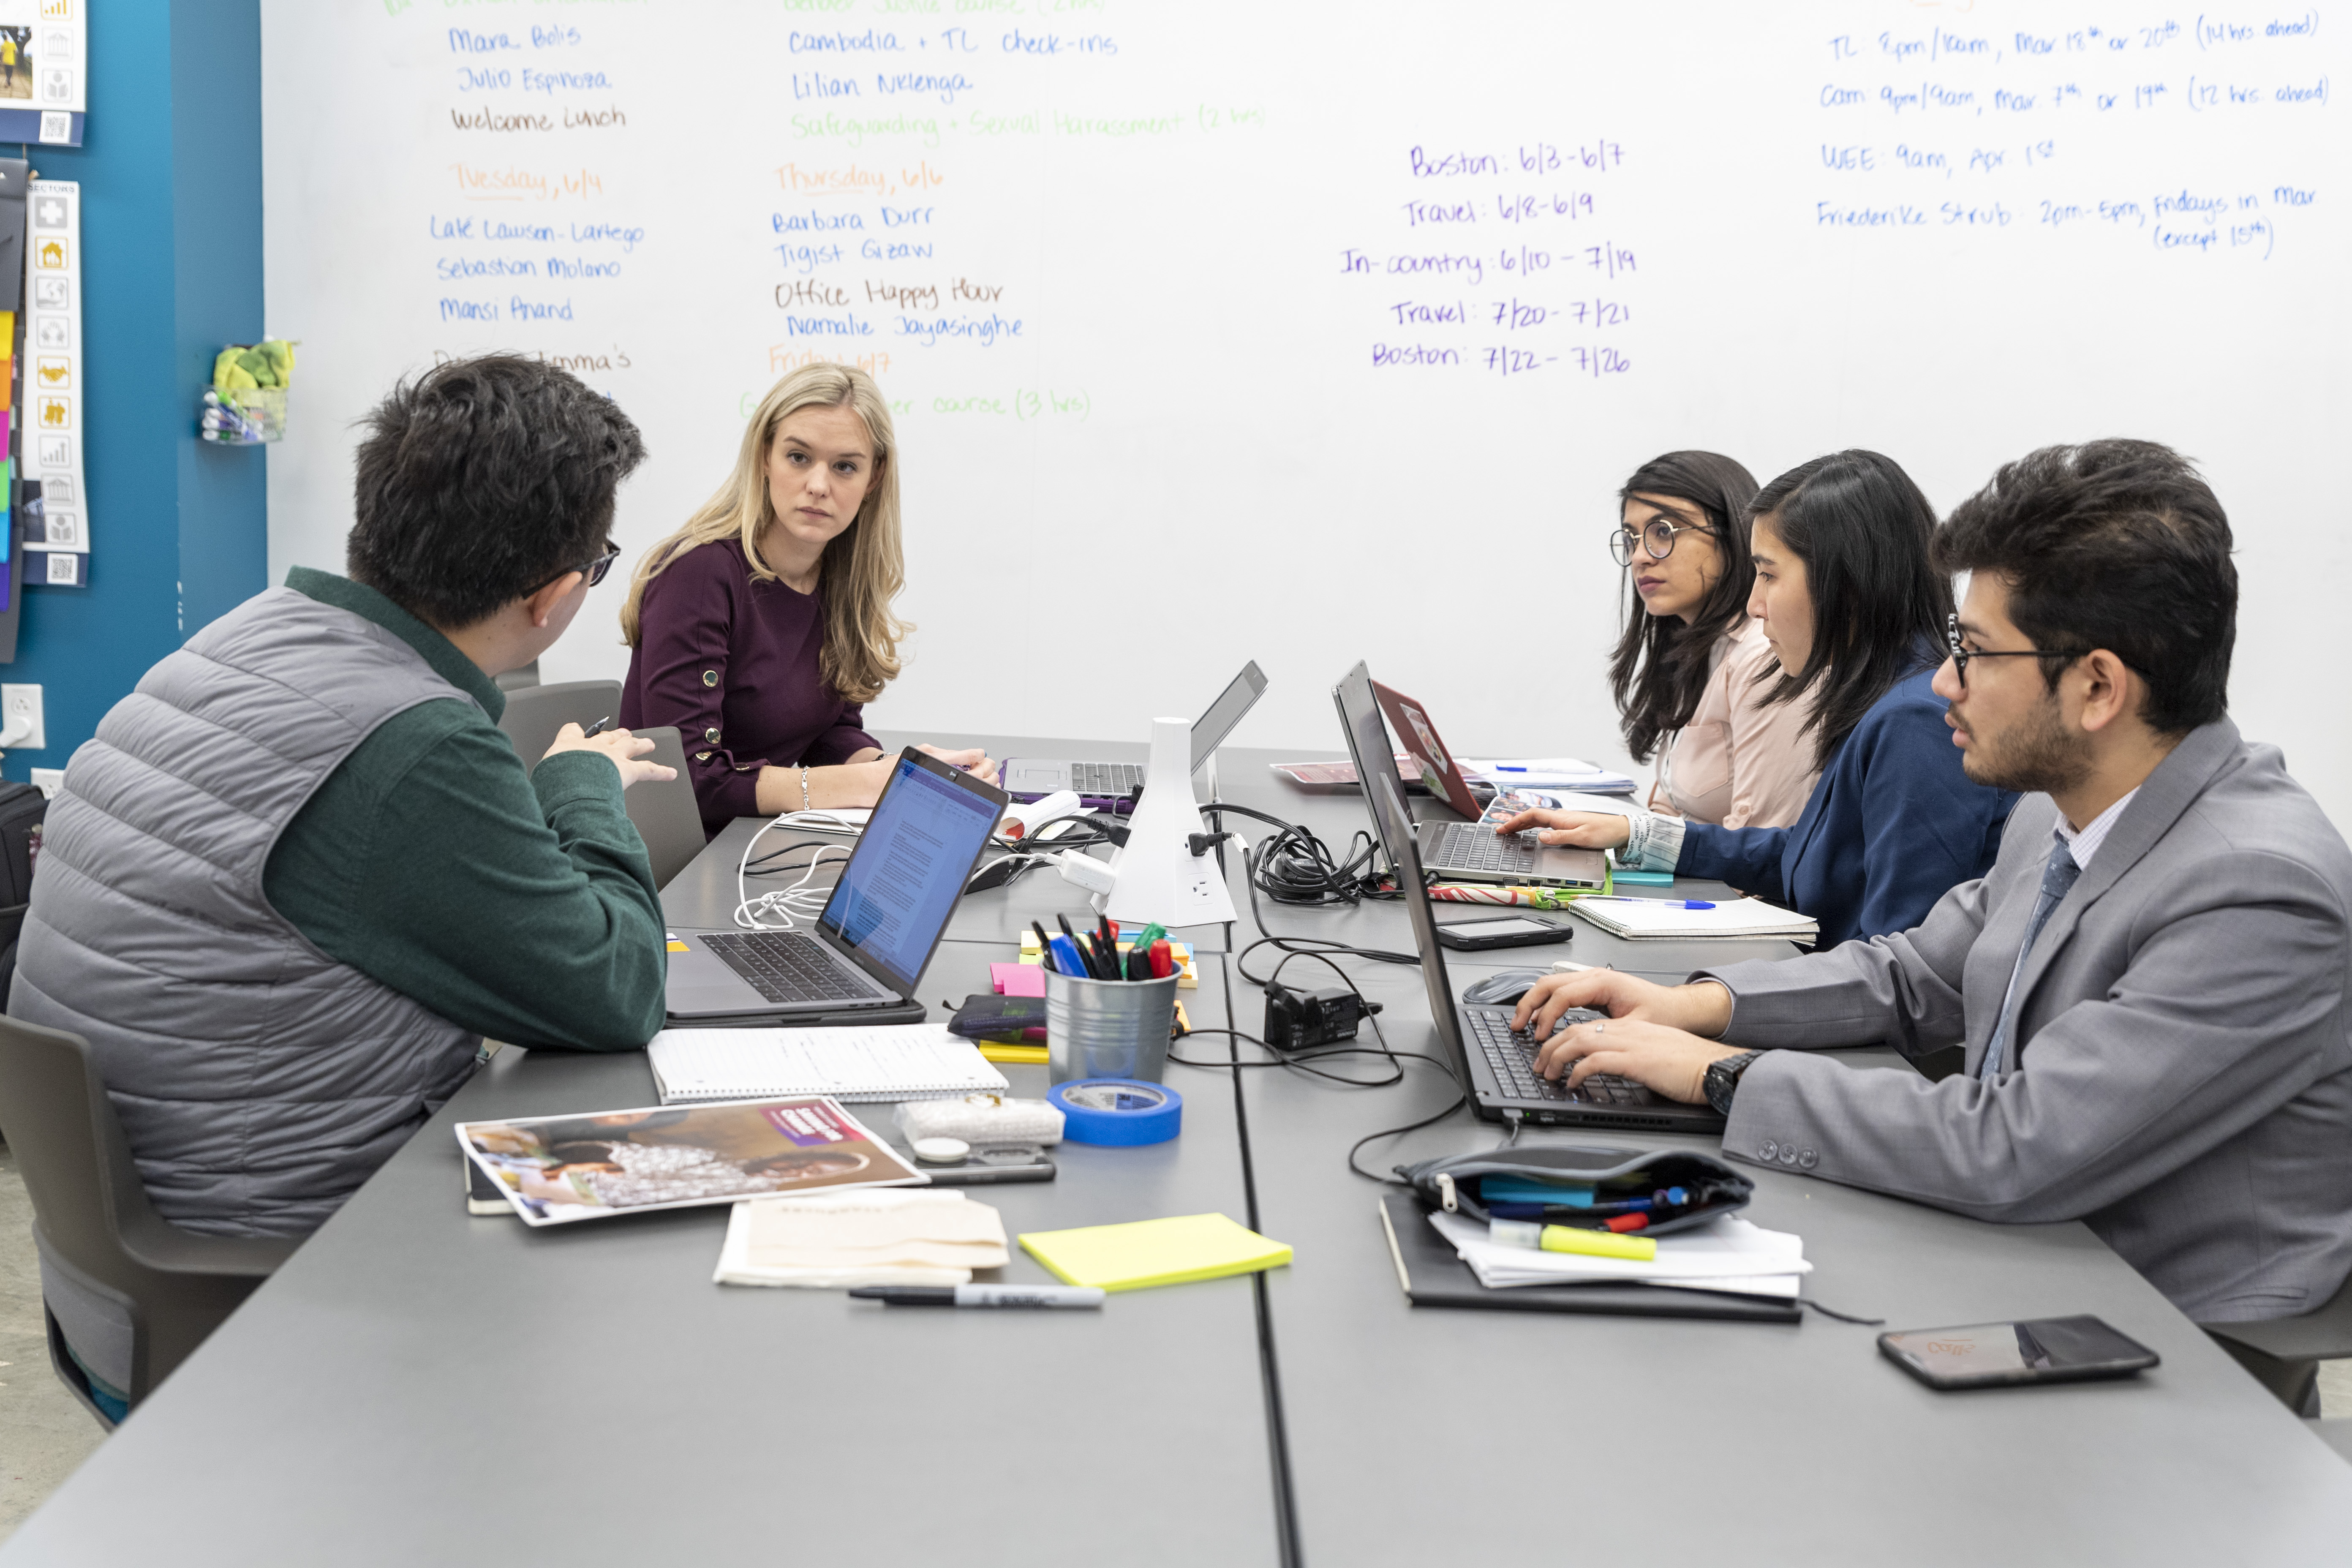 Emma Fawcett hosts a meeting with MGA students in the Keough School's i-Lab. Fawcett is an evaluation, learning and effectiveness advisor at Oxfam America, a 2019 i-Lab global partner.